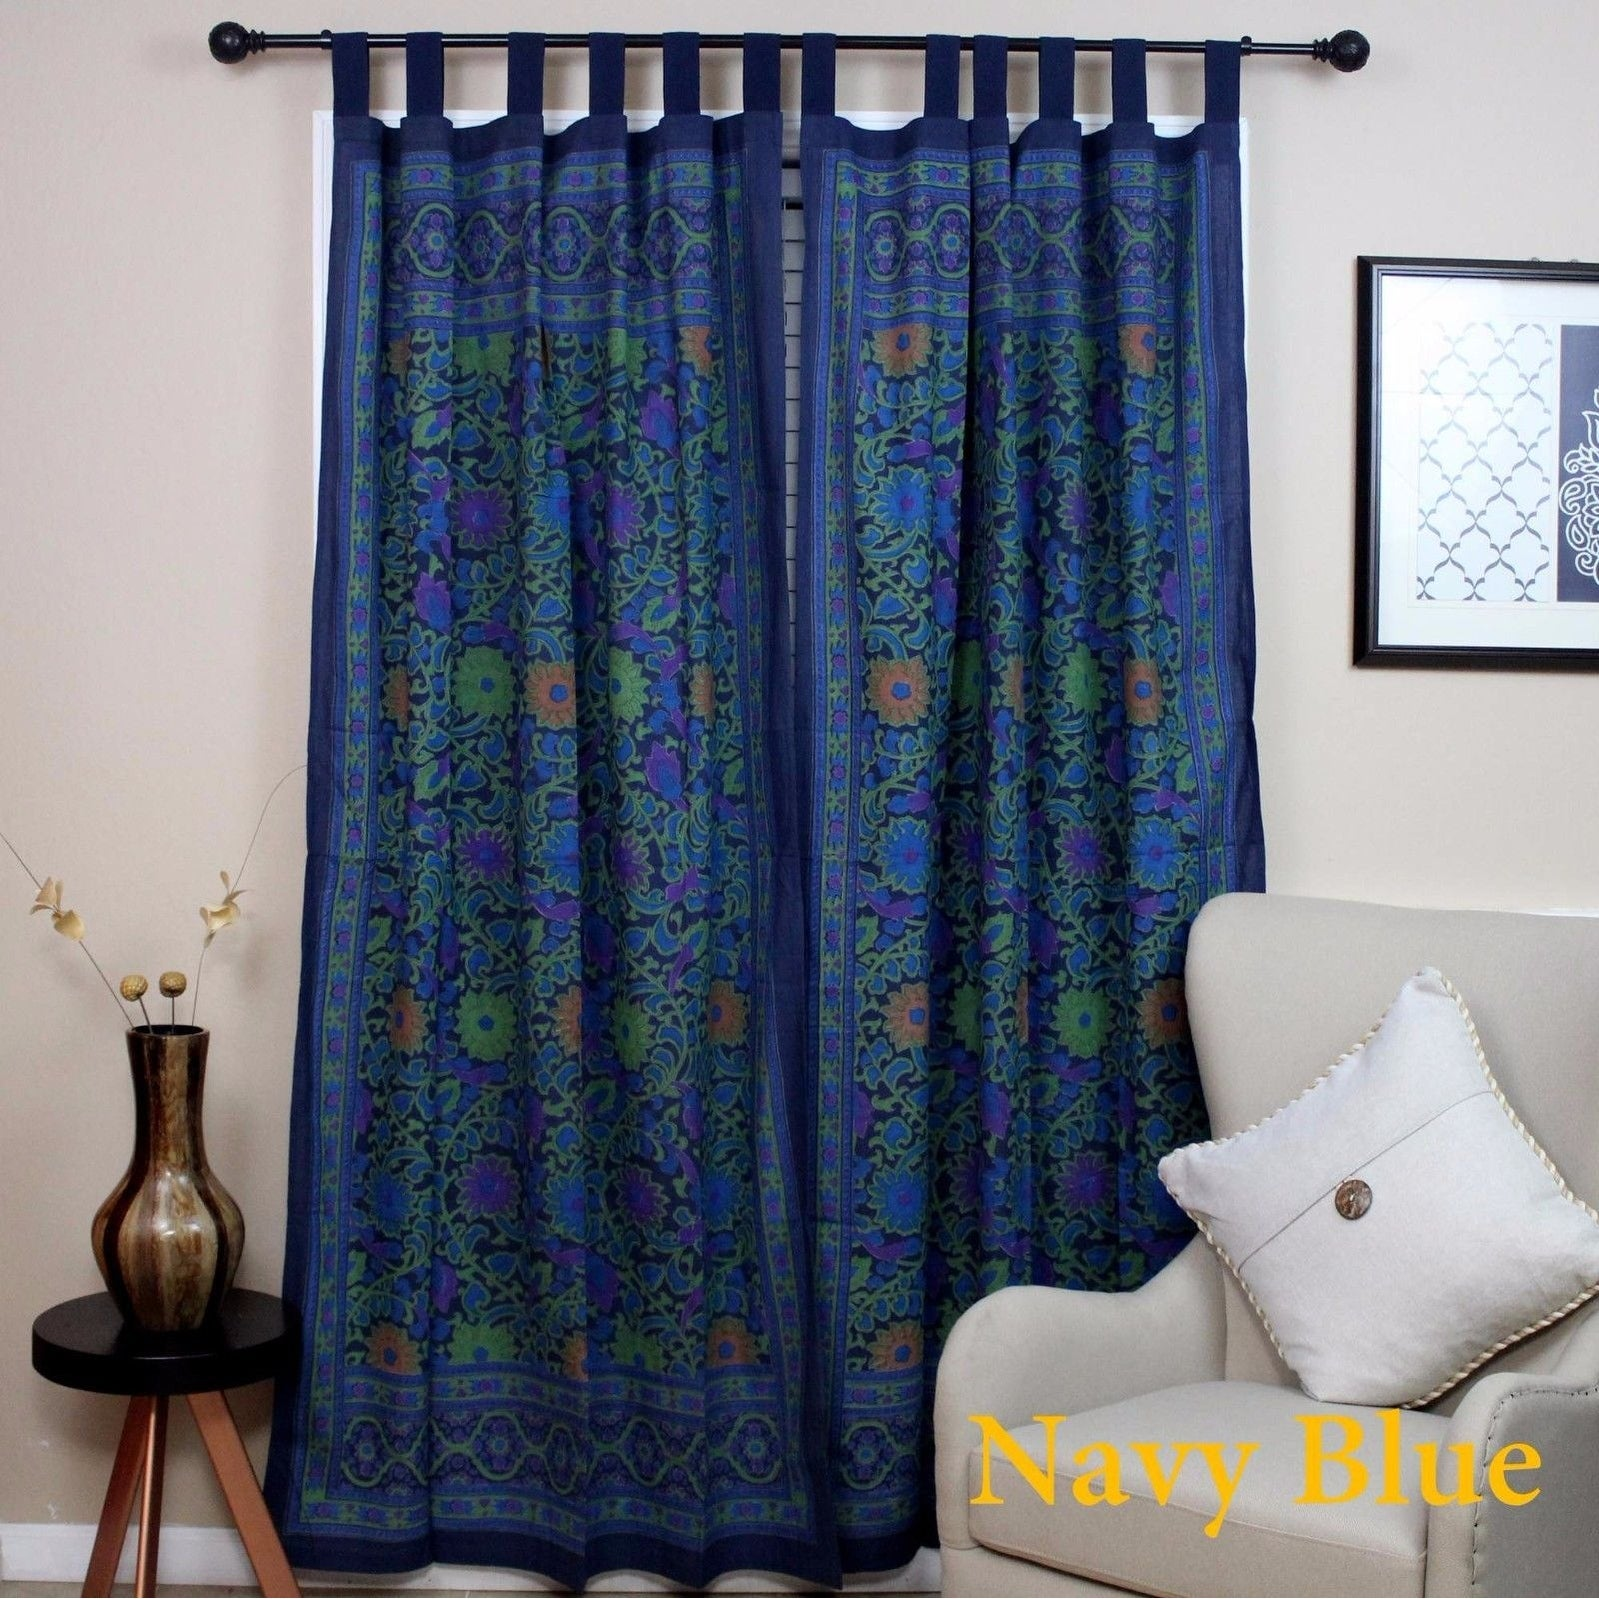 Handmade 100% Cotton Sunflower Floral Tab Top Curtain Drape Door Panel Navy Blue Gray Yellow Black Red 44x88 Inches - Thumbnail 26